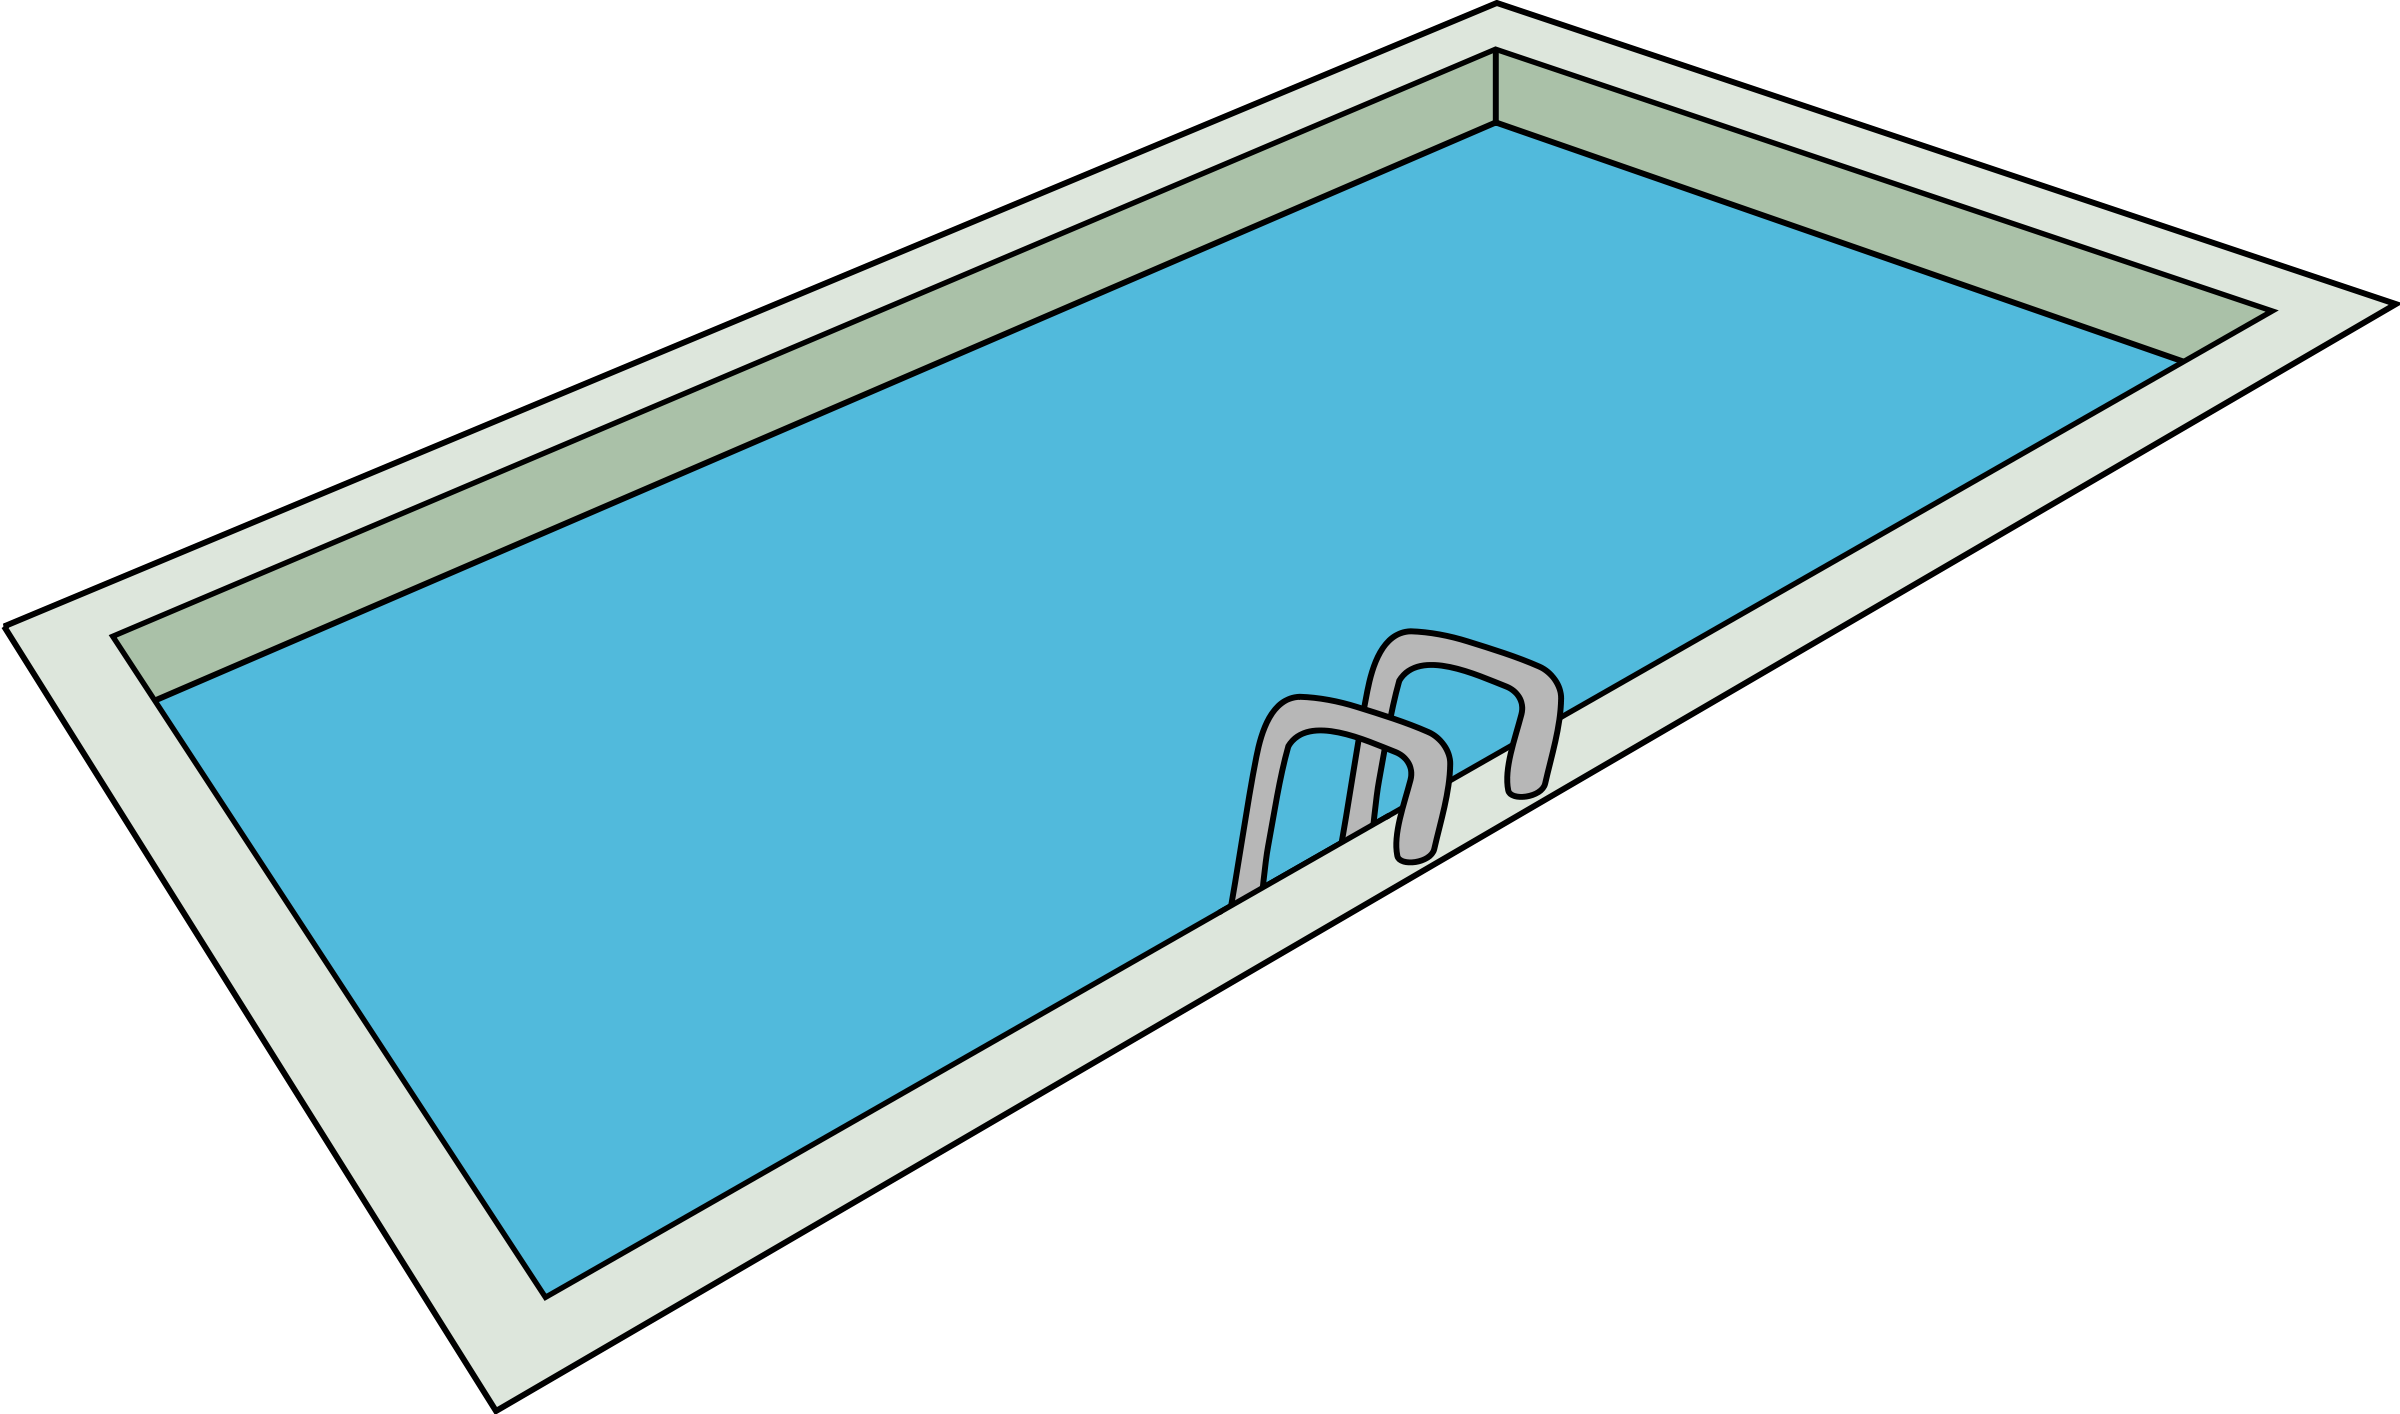 Pool clipart #6, Download drawings